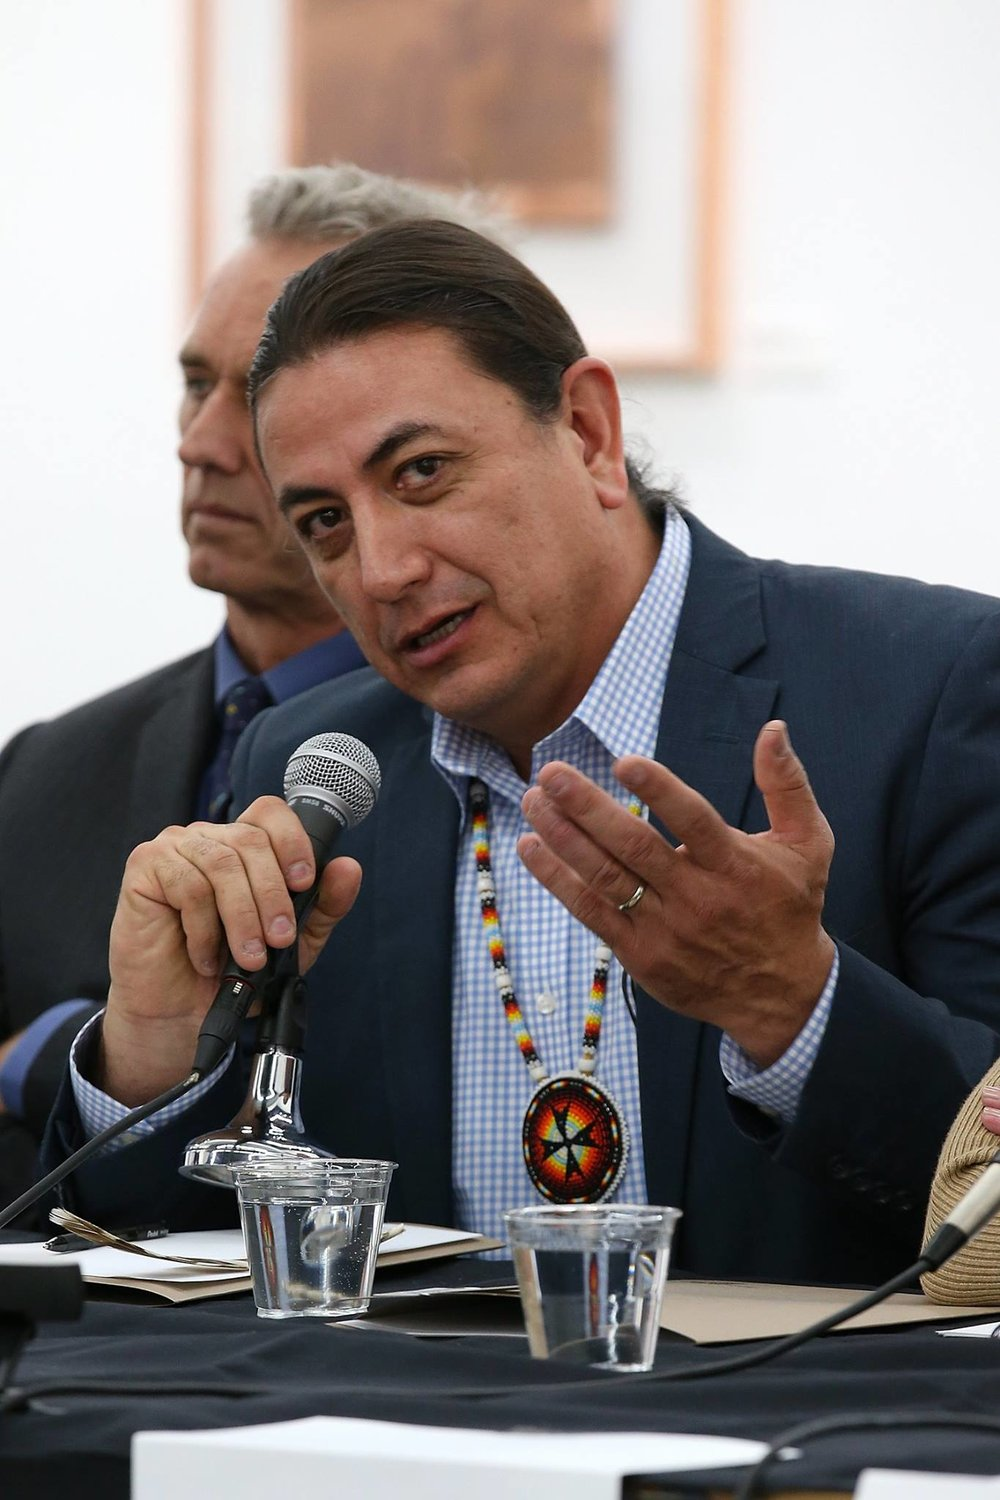 "Photo Credit: Depart Foundation On December 15, 2016, North Dakota's Standing Rock Sioux Chairman, Dave Archambault II, met with Los Angeles areas Native American Leaders, Elders and Native led nonprofits for a welcome ceremony and private meeting hosted by the Depart Foundation (https://www.facebook.com/depart.foundation/) in West Hollywood. The private meeting commenced with Mati Waiya (Wishtoyo Chumash Foundation Founder and Ceremonial Elder) placing a circle of tobacco with an abalone shell and sage bundles in the center of a circle to ground all participants in ceremony and a prayer given by Tongva Elder, Julia Bogany. All in attendance welcomed the Chairman with traditional and other gifts and words expressing solidarity and gratitude for the Standing Rock Sioux Tribe's leadership in providing the example of protesting in peace and prayer to protect their traditional land and water from the Dakota Access Pipeline in the face of a militarized police force. http://www.npr.org/sections/codeswitch/2016/11/22/502068751/the-standing-rock-resistance-is-unprecedented-it-s-also-centuries-old. A discussion regarding the fact that ""Standing Rock is Everywhere"" layed the groundwork to speak about  local ""standing rock"" issues and a comparission of different laws used to help protect Native American cultural resources, water, sacred sites, and treaty rights and the complexity of working with Federal Agencies. Chairman Archambault expressed that he was very grateful for the overwhelming support and would be happy to reciprocate support in local efforts. The two hour meeting ended with a prayer given by Tongva Elder, Gloria Arellanes. The Chairman went on to prepare for a first time public conversation in Los Angeles on a speakers panel with Robert Kennedy, Jr., Jane Fonda, Bruce Kapson, moderator Jon Christensen and special guest speaker, LaDonna Brave Bull Allard.The panel spoke to the current status of legal and on the ground efforts being made to stop the Dakota Access Pipeline from being completed and the fact that, even with, the December 5th announcement that the Army Corp of Engineers would not permit the Energy Transfer Partners to proceed with the Dakota Access Pipeline, the battle was not over. The Chairman had previously announced, ""I know this is a victory for this one DAPL battle, but we have not won the DAPL war. There will be more battles ahead and we will contine to strategize and win. The camp has brought us this far -- now it is time we pivot to the next phase of this struggle. That will be lead on different fronts like in court, with the new Administration, with Congress, and with investors."" (standingrock.org and sacredstonecamp.org).  The Chairman shared how unexpected it was that the ""camp"" would grow to include literally hundreds of Tribes, and thousands of people; Native and Non-Native Folks, Environmentalist, Celebrity Activists, Veterans, supporters from all over the world, young and old. This movement is a profoundly important example and reminder of, as LaDonna says, ""learning to live with the Earth again."" Chairman Archambault, shared, that he didn't want people to come here (the camp) to die. We want our young warriors to live. To be good fathers, parents.  Robert Kennedy, Jr. untangled the legal issues and put it into plain terms for all to understand. Jane Fonda strongly encouraged people to  divest from the financial institutions that are backing the DAPL project (defunddapl.org). She's currently organizing to do just that. For her Birthday on December 21st - the Day of the Winter Solstice Jane will remove her money from a LA area Wells Fargo Bank in efforts to encourage others to follow suit.  To Donate to the NODAPL effort directly to the Standing Rock Sioux Tribe Go To: http://standwithstandingrock.net/donate/ # defunddapl #StandingRockisEverywhere #DepartFoundation # wishtoyochumashfoundation #waterislife  #Tongva #Tataviam #Chumash #acjachemen #Lanativeamericancommission #sacredplacesinstitute #anauacalmecac #metabolicstudio #vck #ccka #wka #LDF #SGA   Special Thanks to the generous host  Depart Foundation and the Tongva Elders of Los Angeles for opening and closing these two events with prayer."